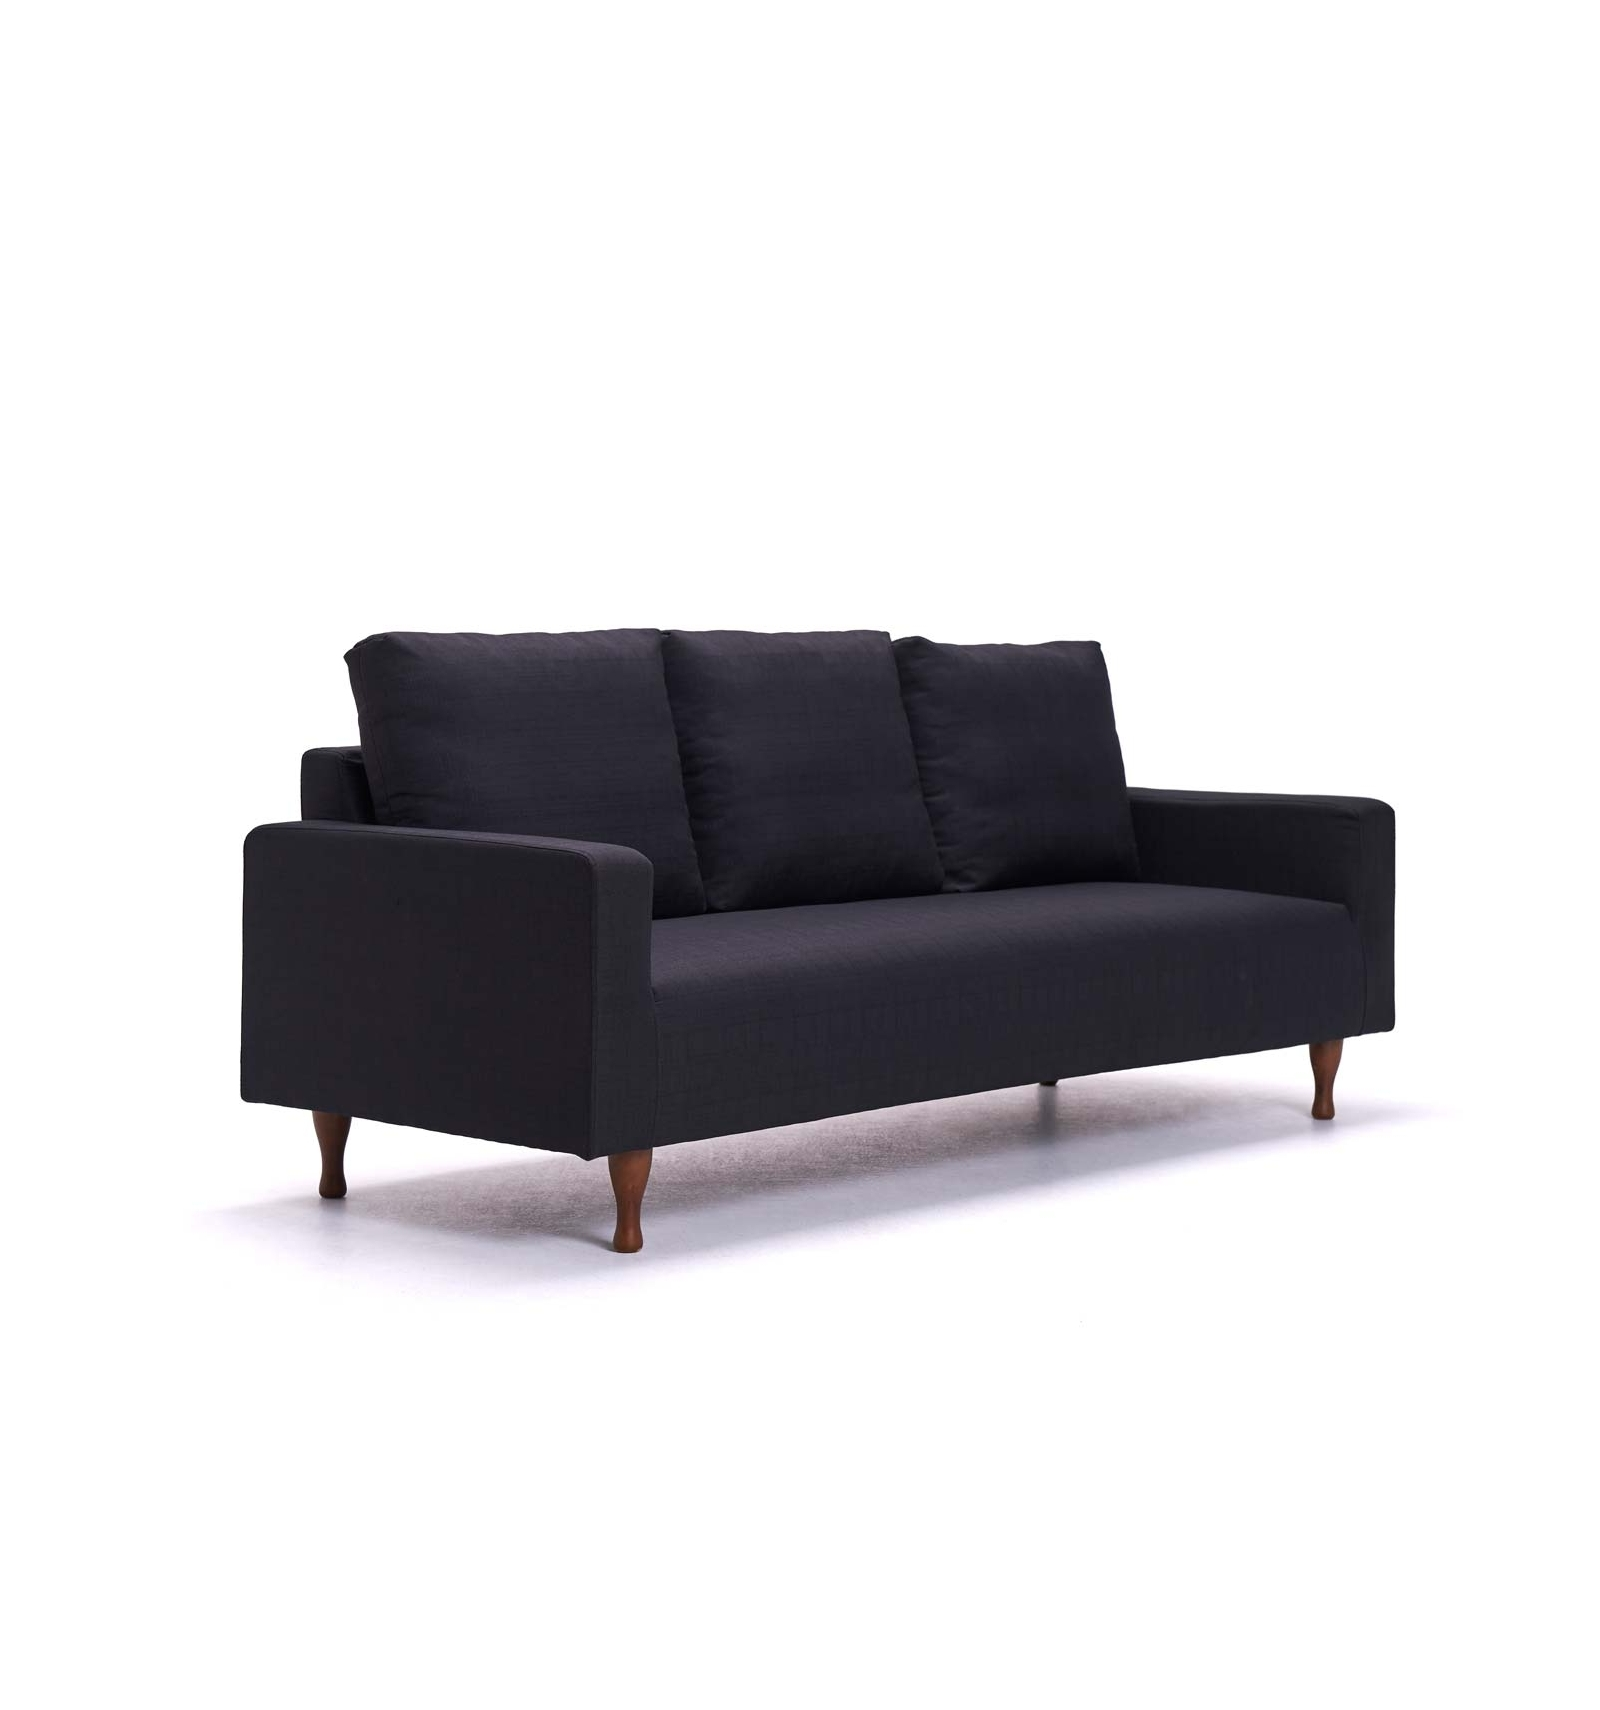 drei sitzer sofa. Black Bedroom Furniture Sets. Home Design Ideas